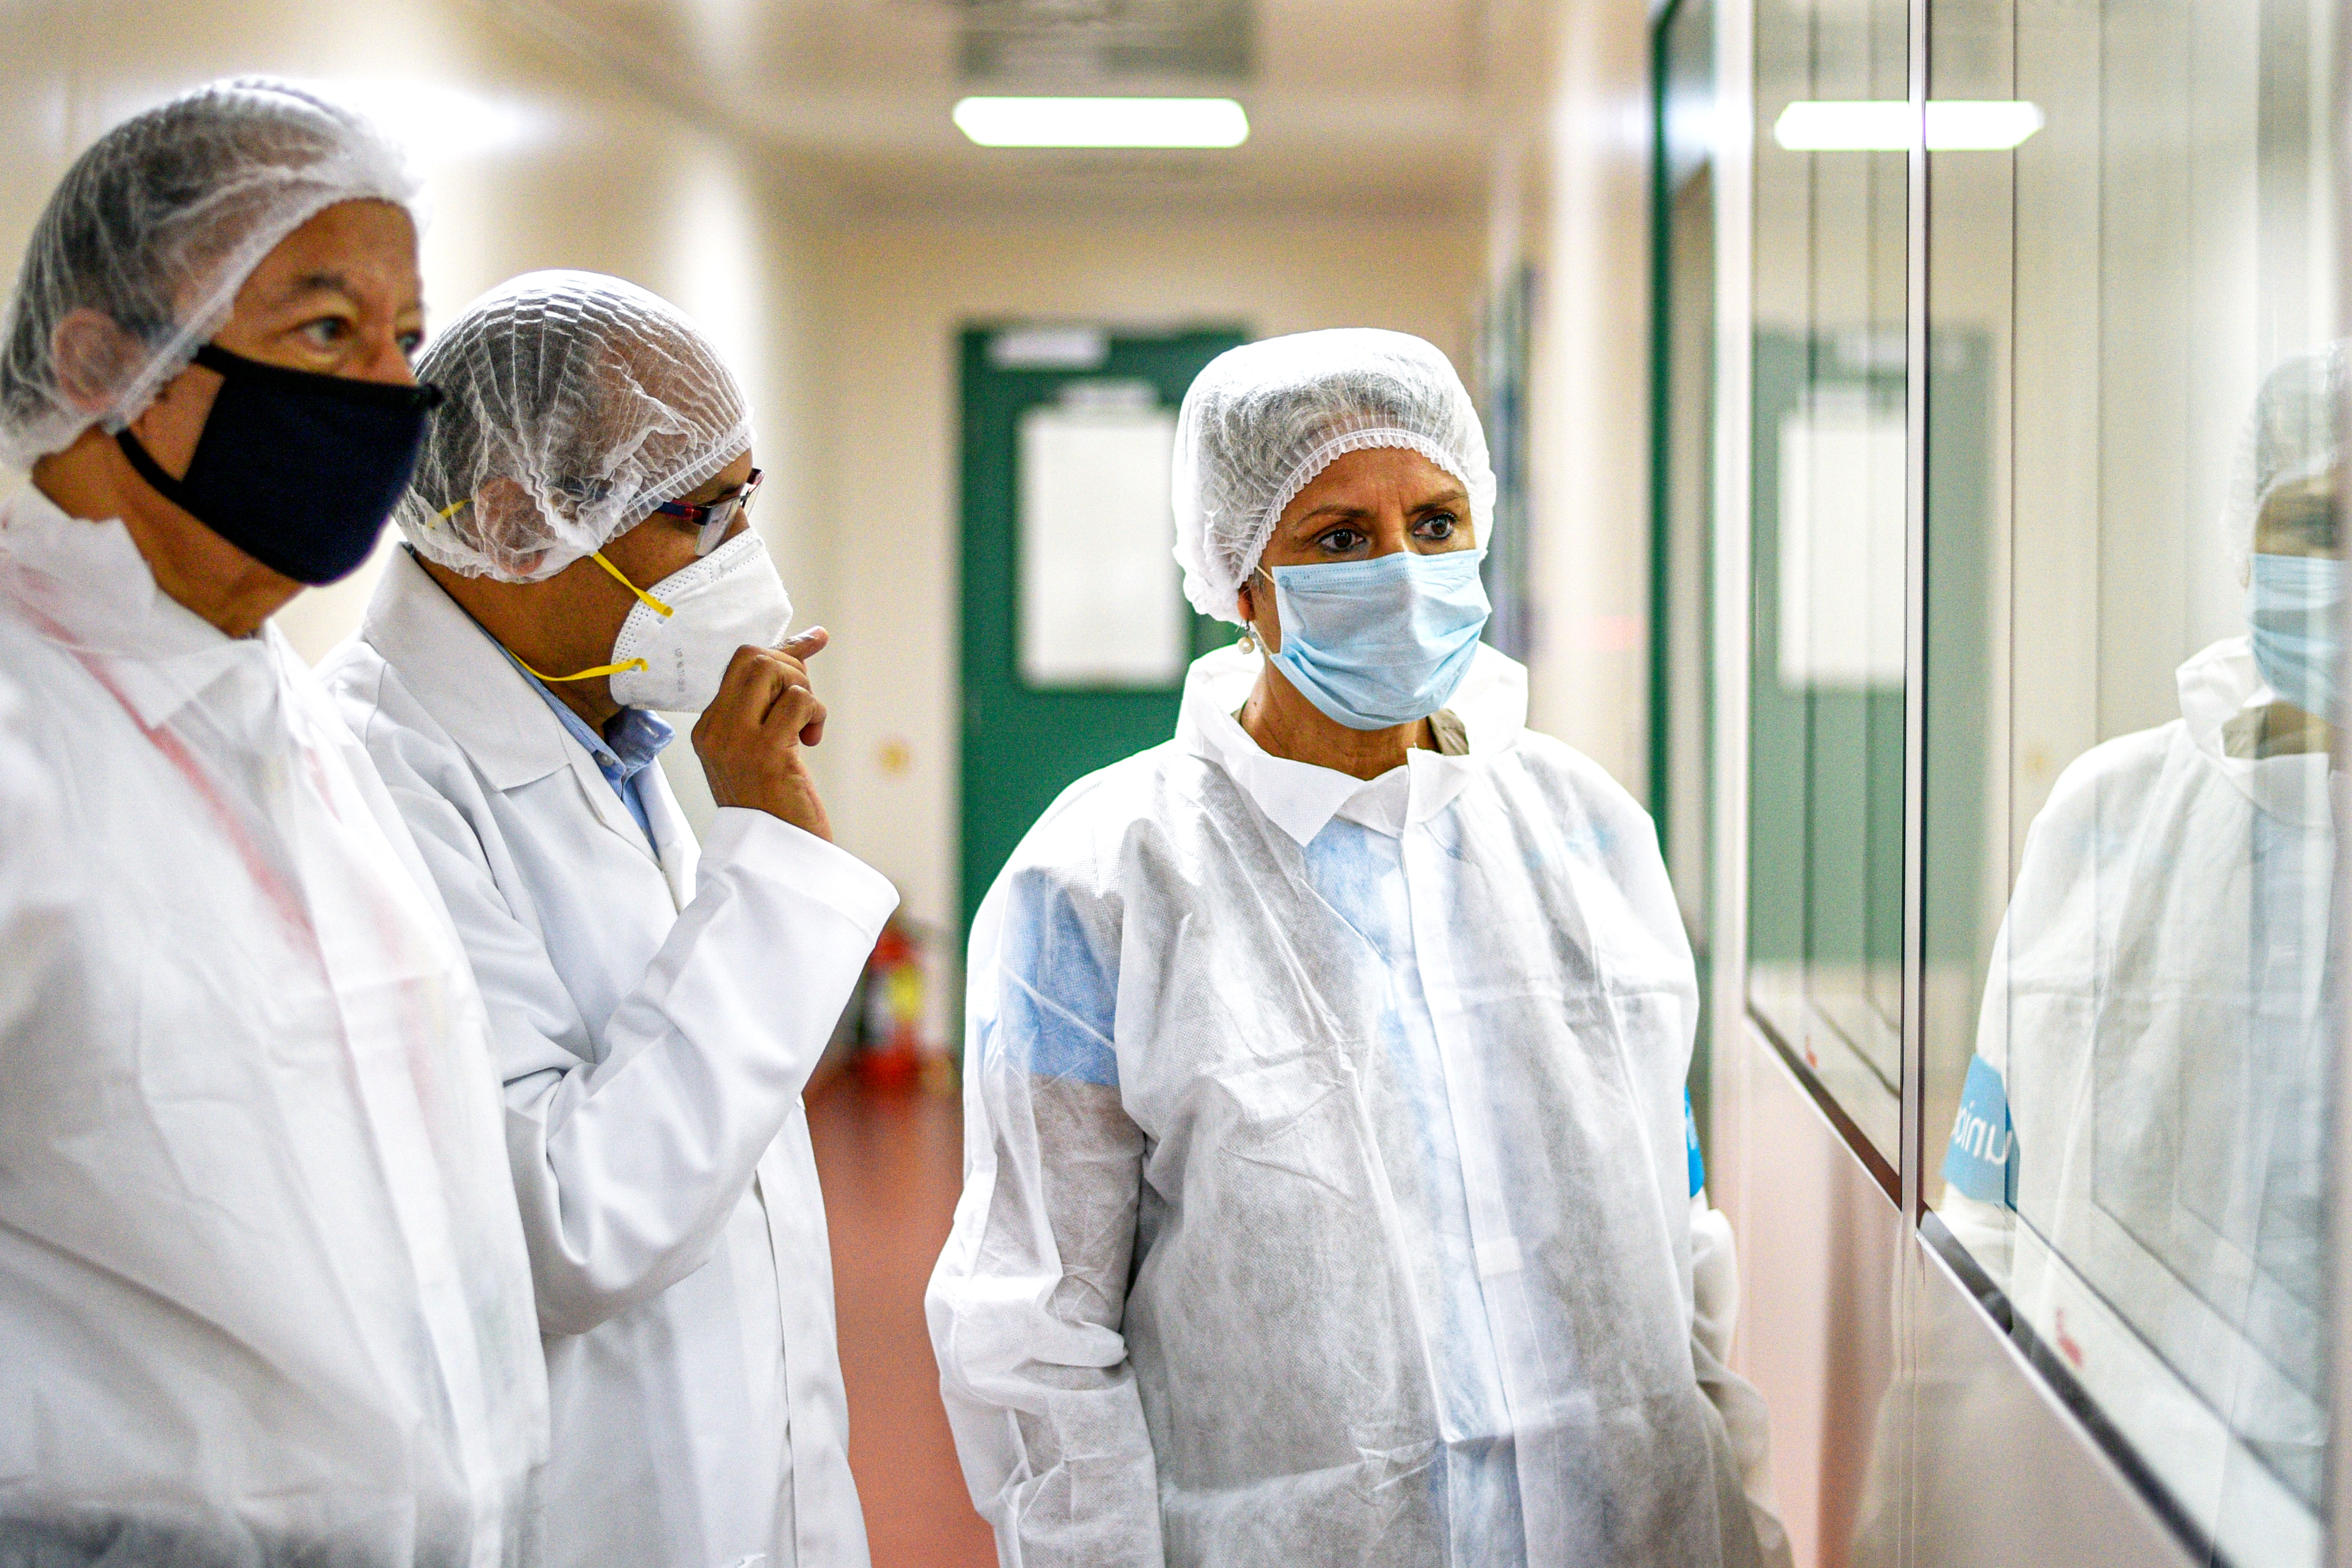 Yasmin wears protective gear as she and colleagues look through a window inside a vaccine facility.